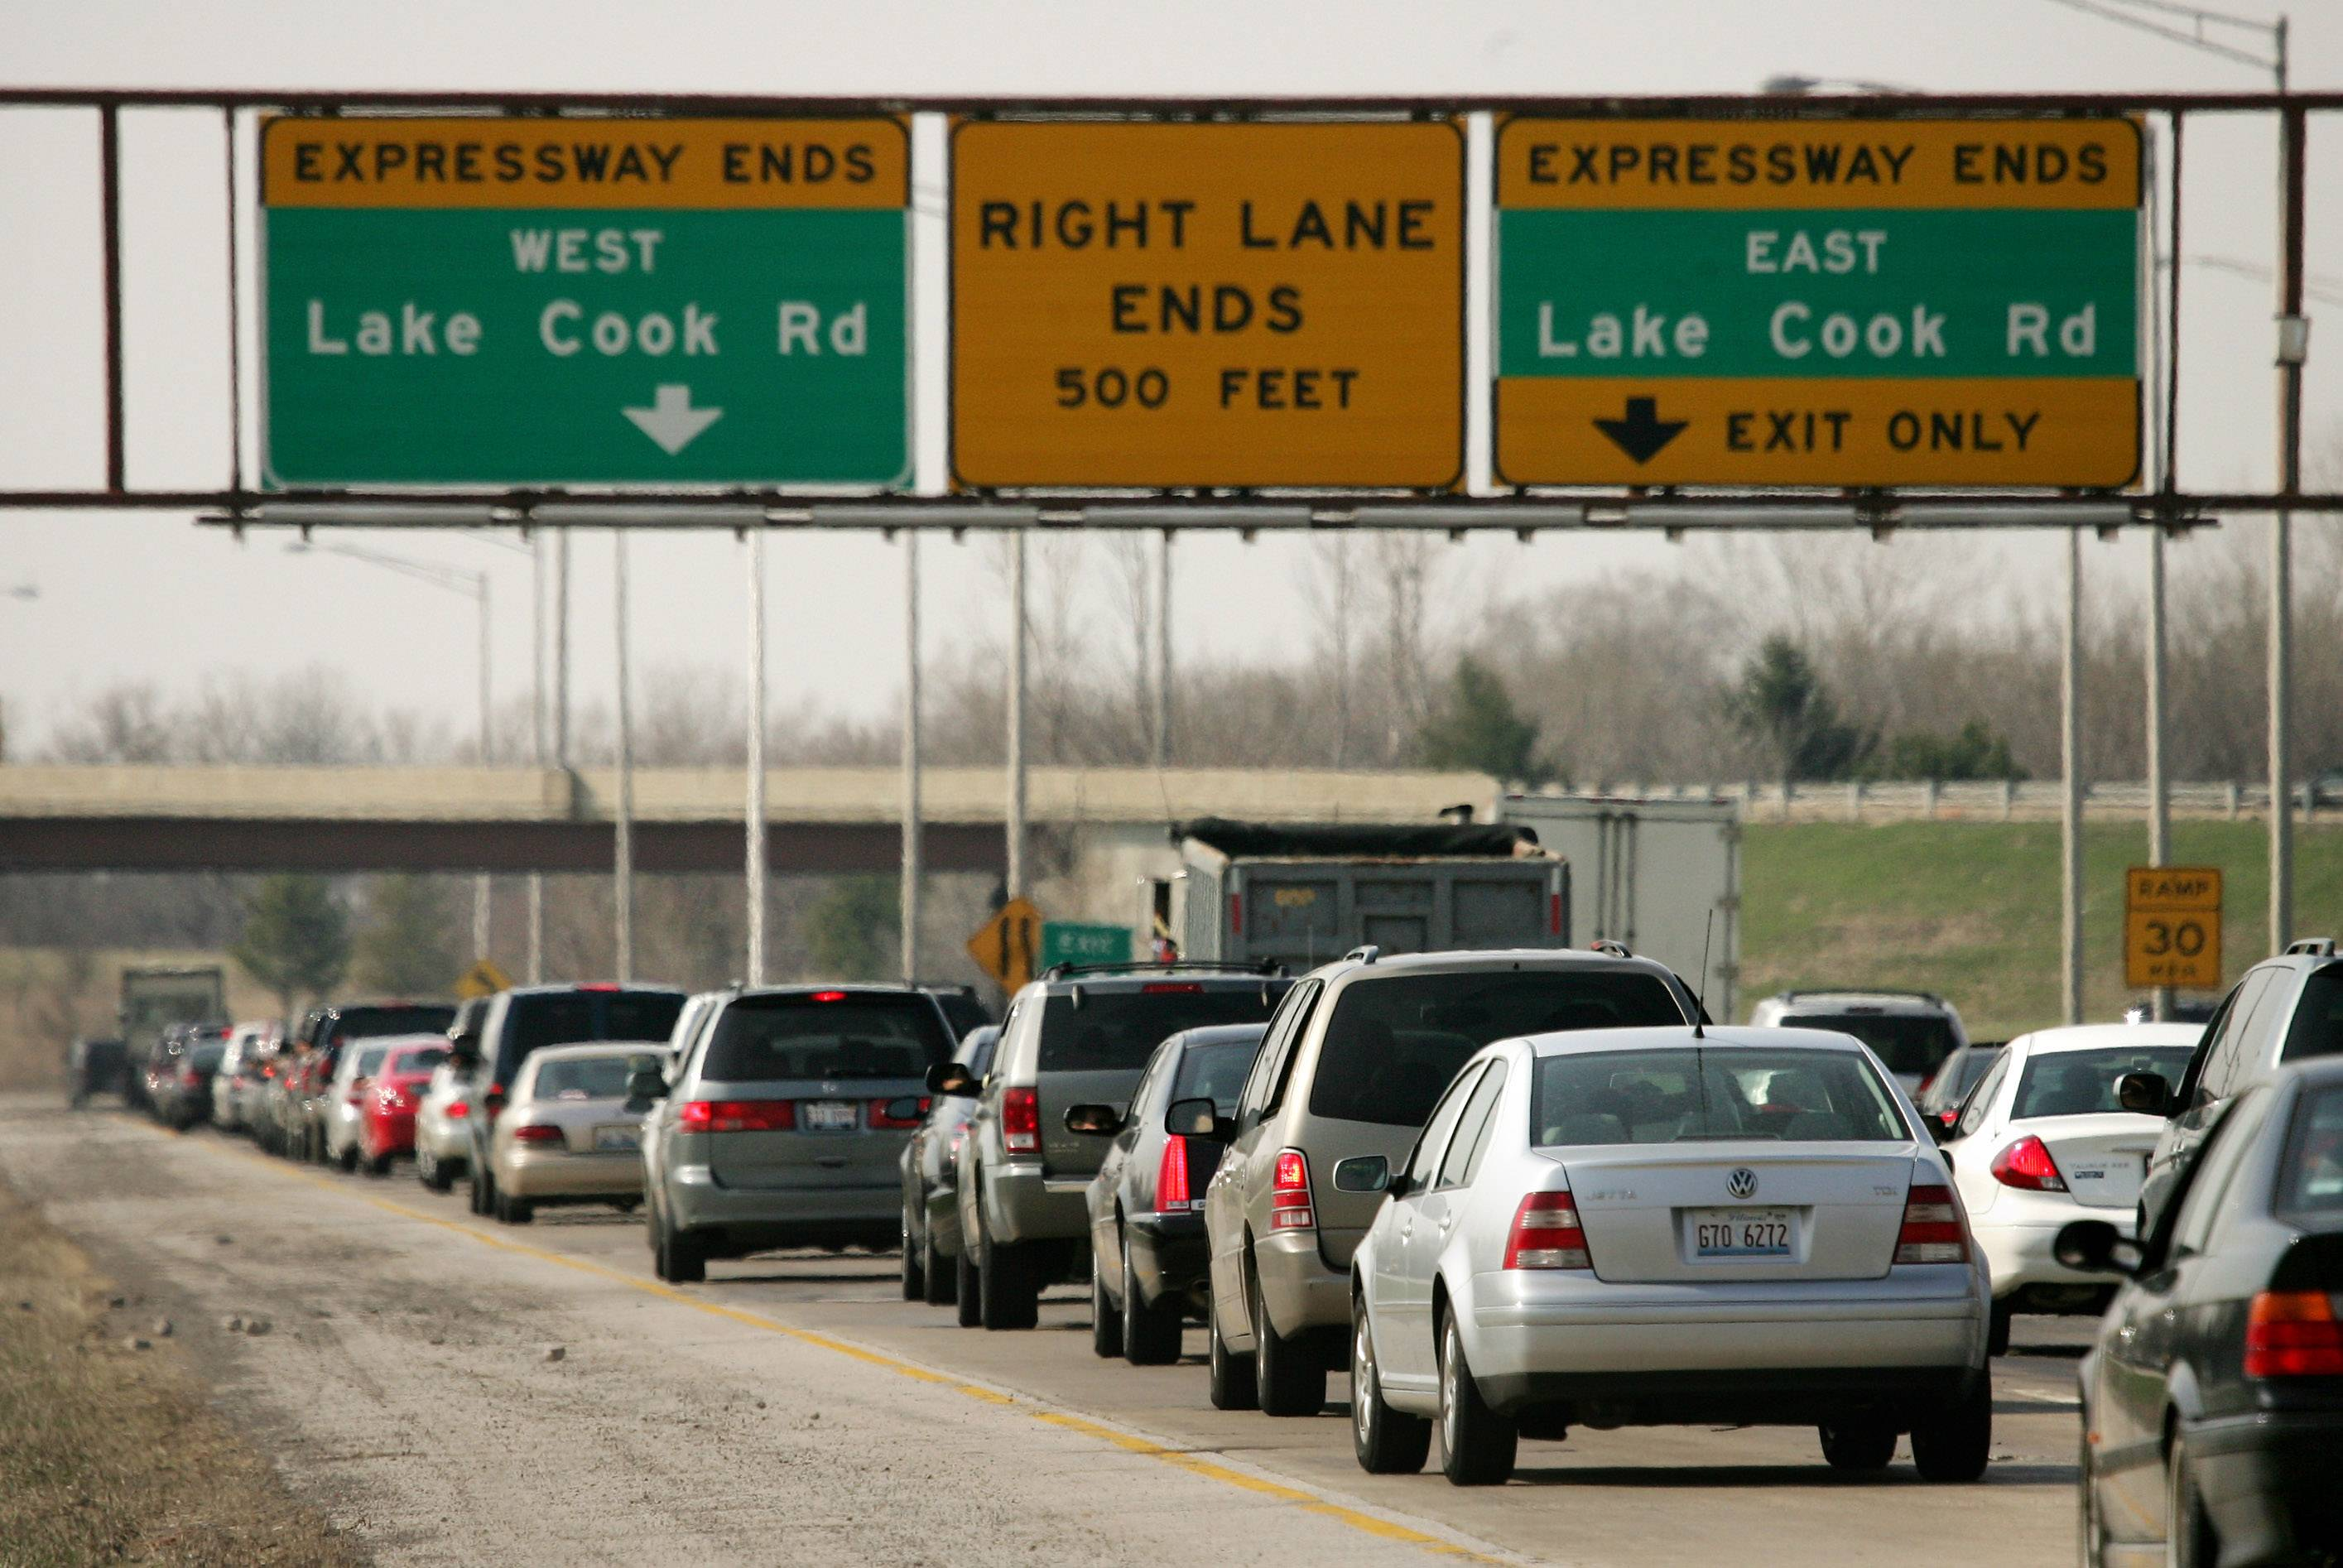 A group of Lake County residents who oppose the Route 53 expansion project filed a lawsuit yesterday to try to stop the Illinois State Toll Highway Authority from going through with the extension.